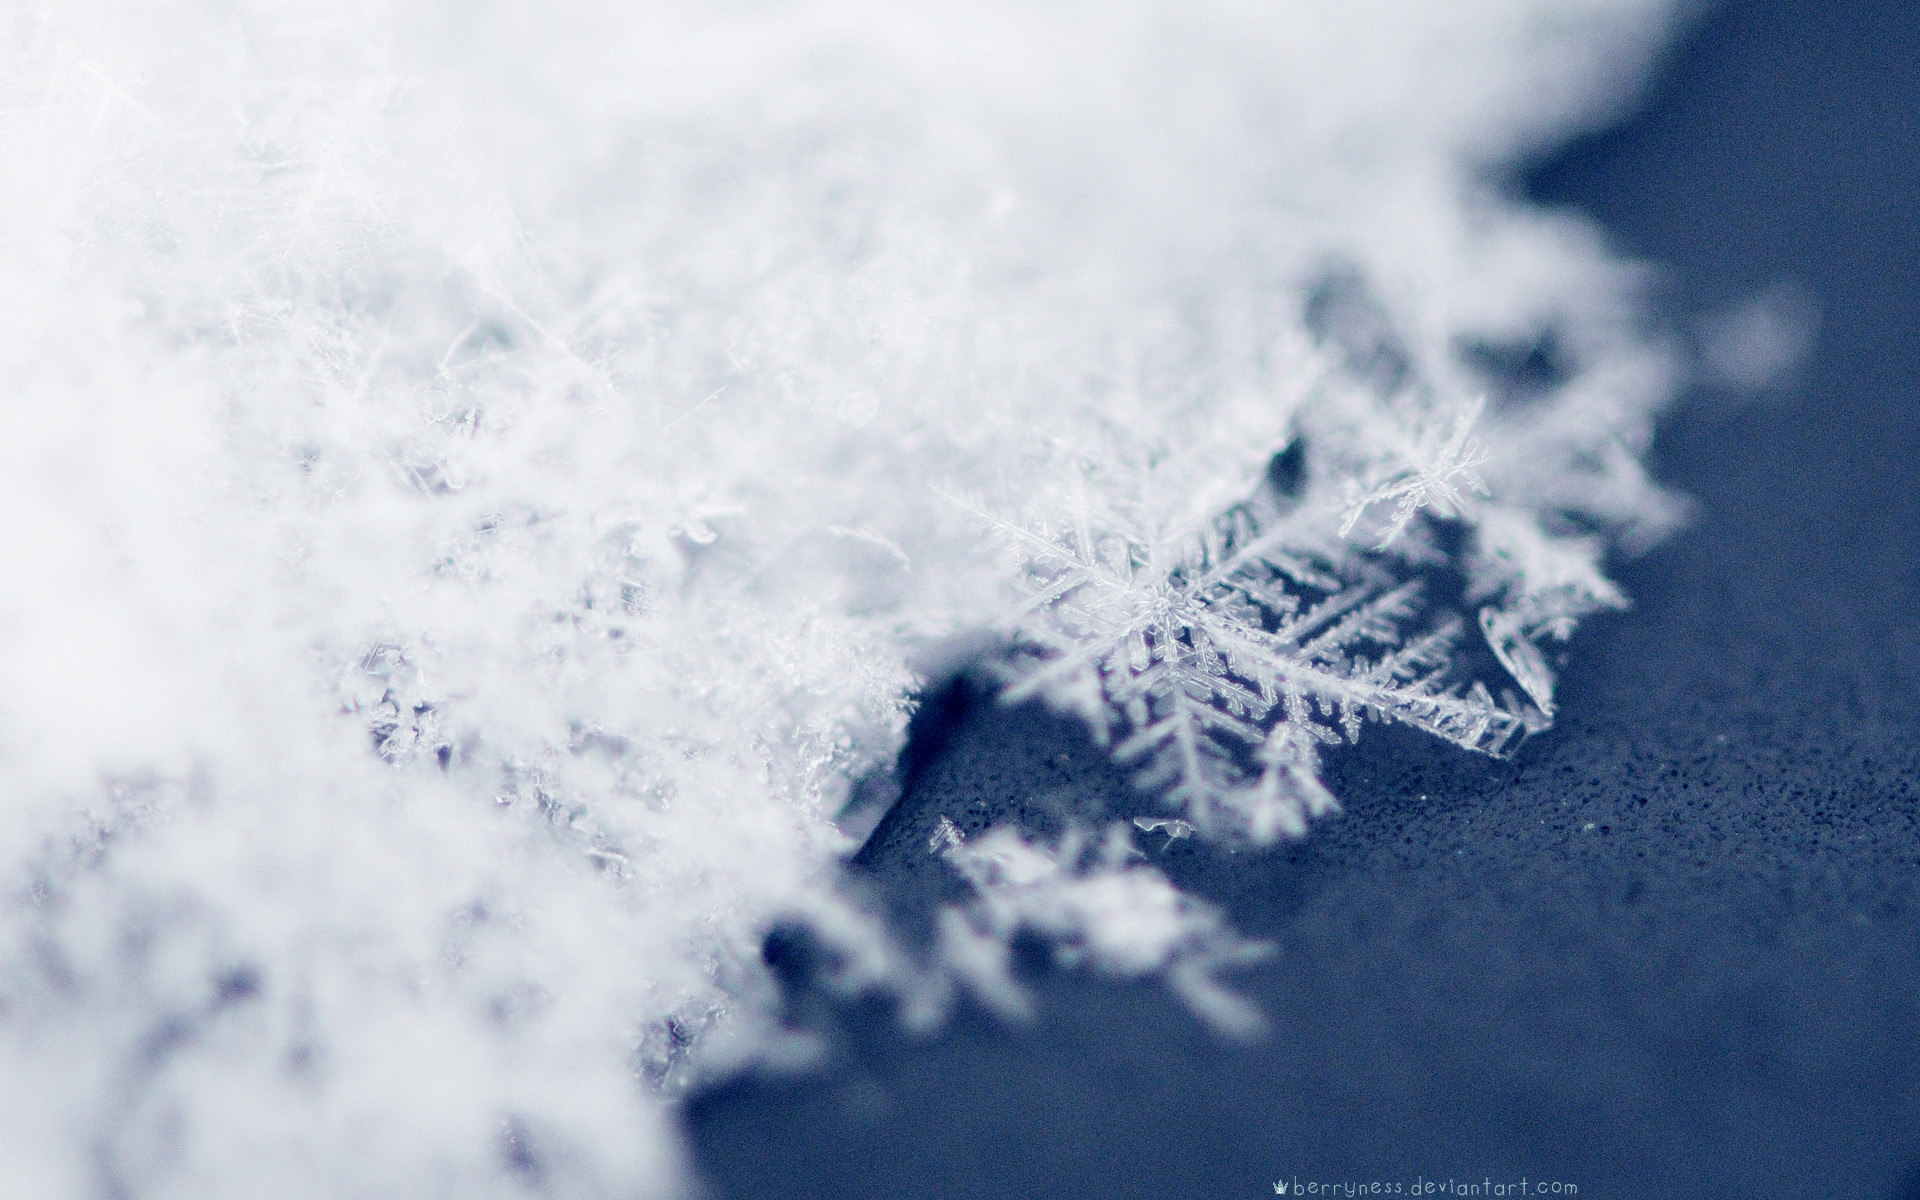 Res: 1920x1200, Image for Macro Photography Snowflakes Wallpaper Widescreen HD